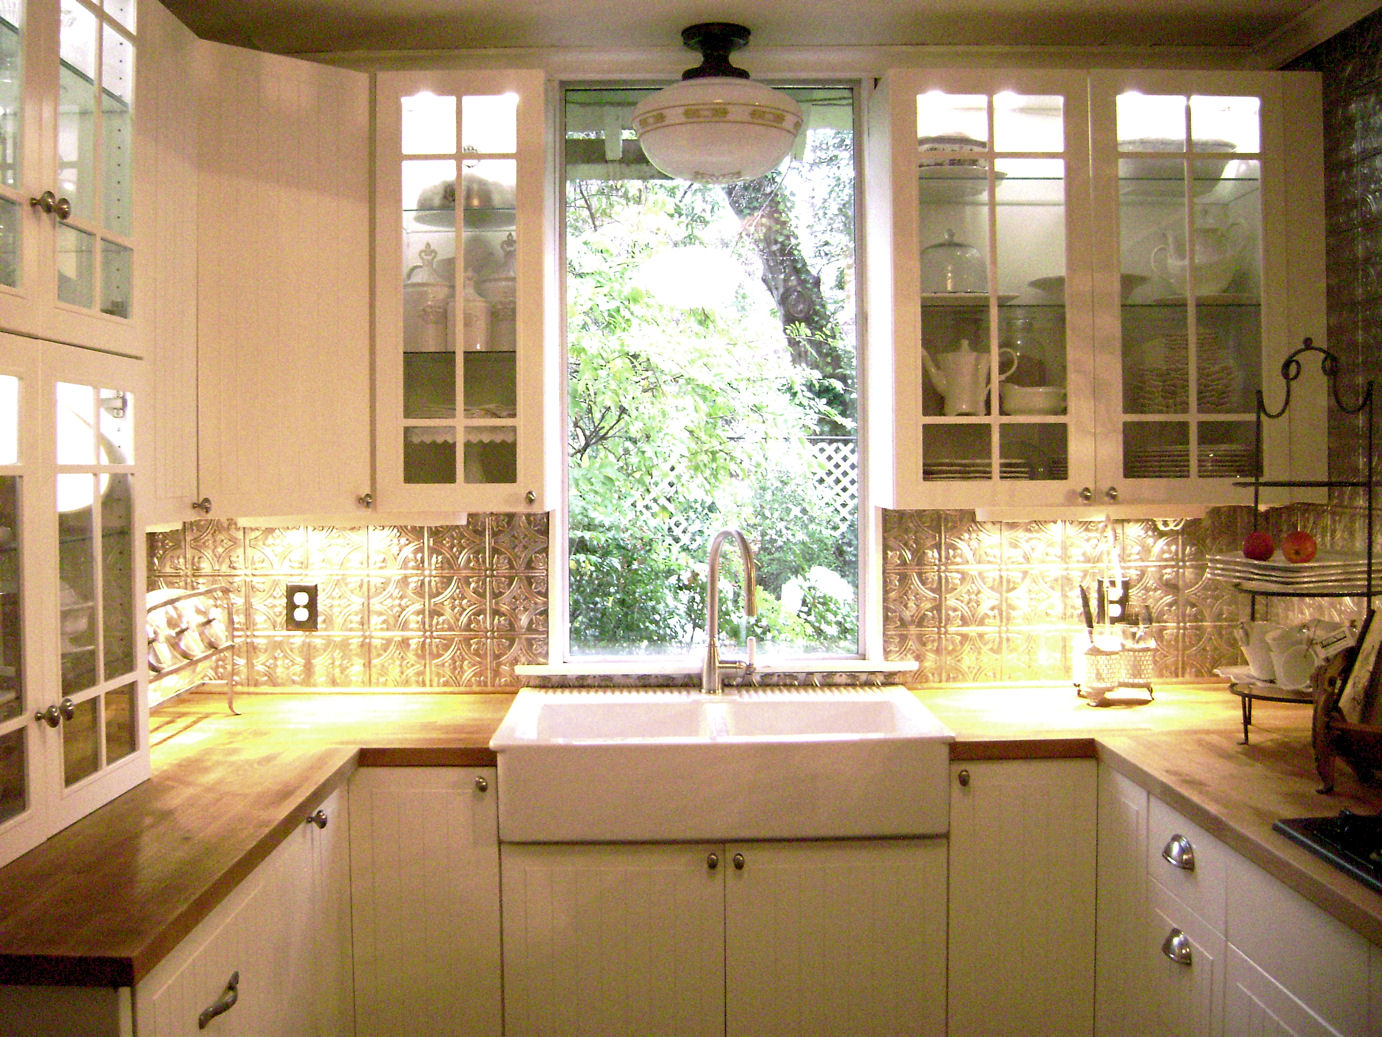 Kitchen display cabinets Photo - 6